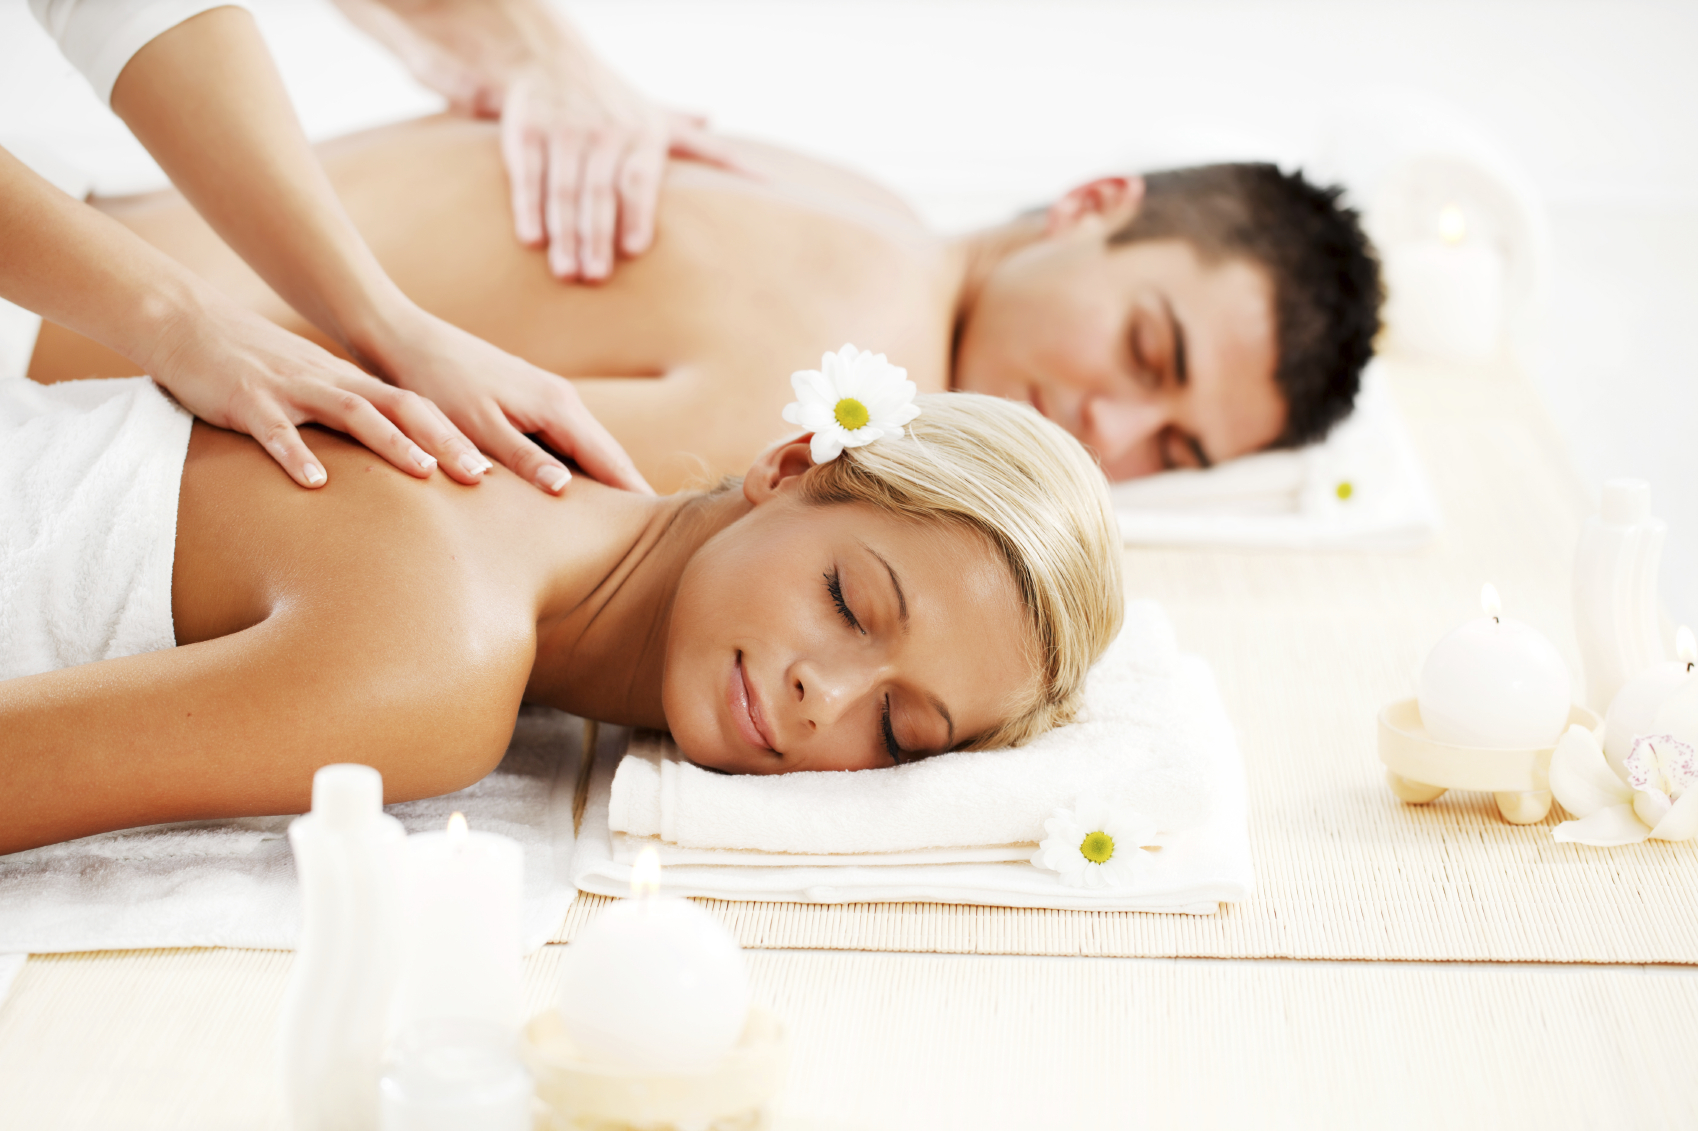 Romantic couple is having a back massage in spa center.